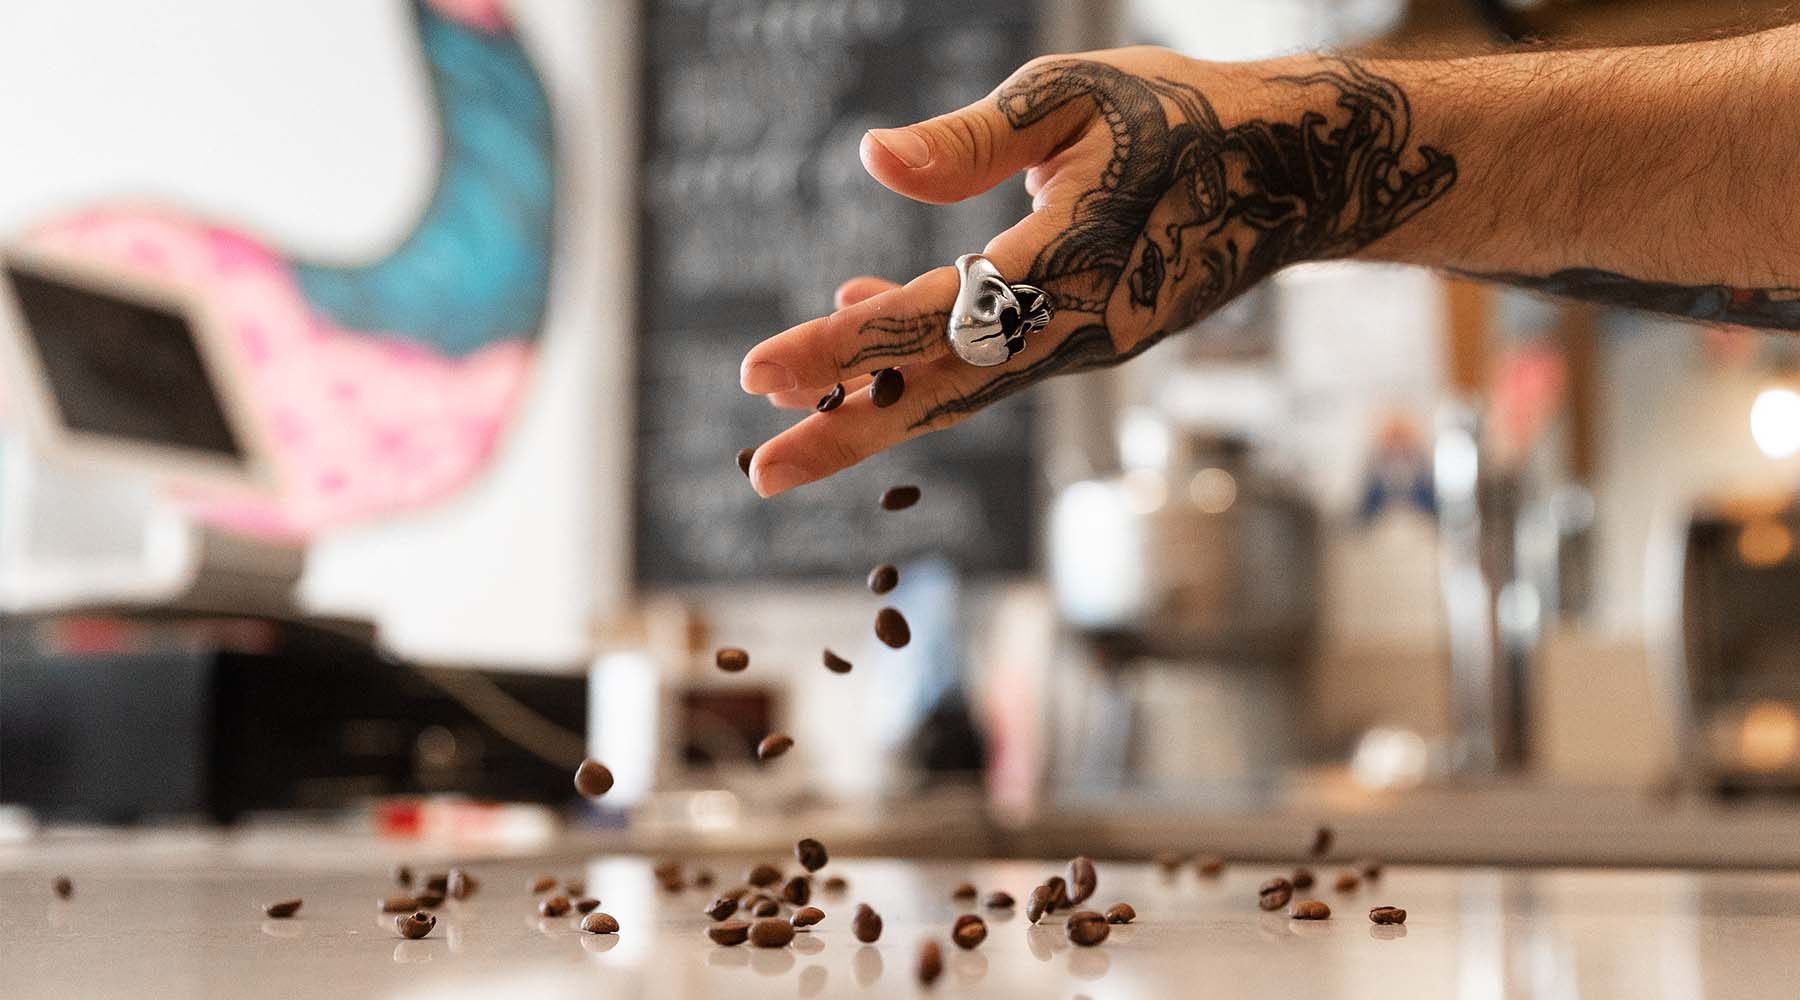 Hand in a cafe dropping coffee beans on to the cafes counter top